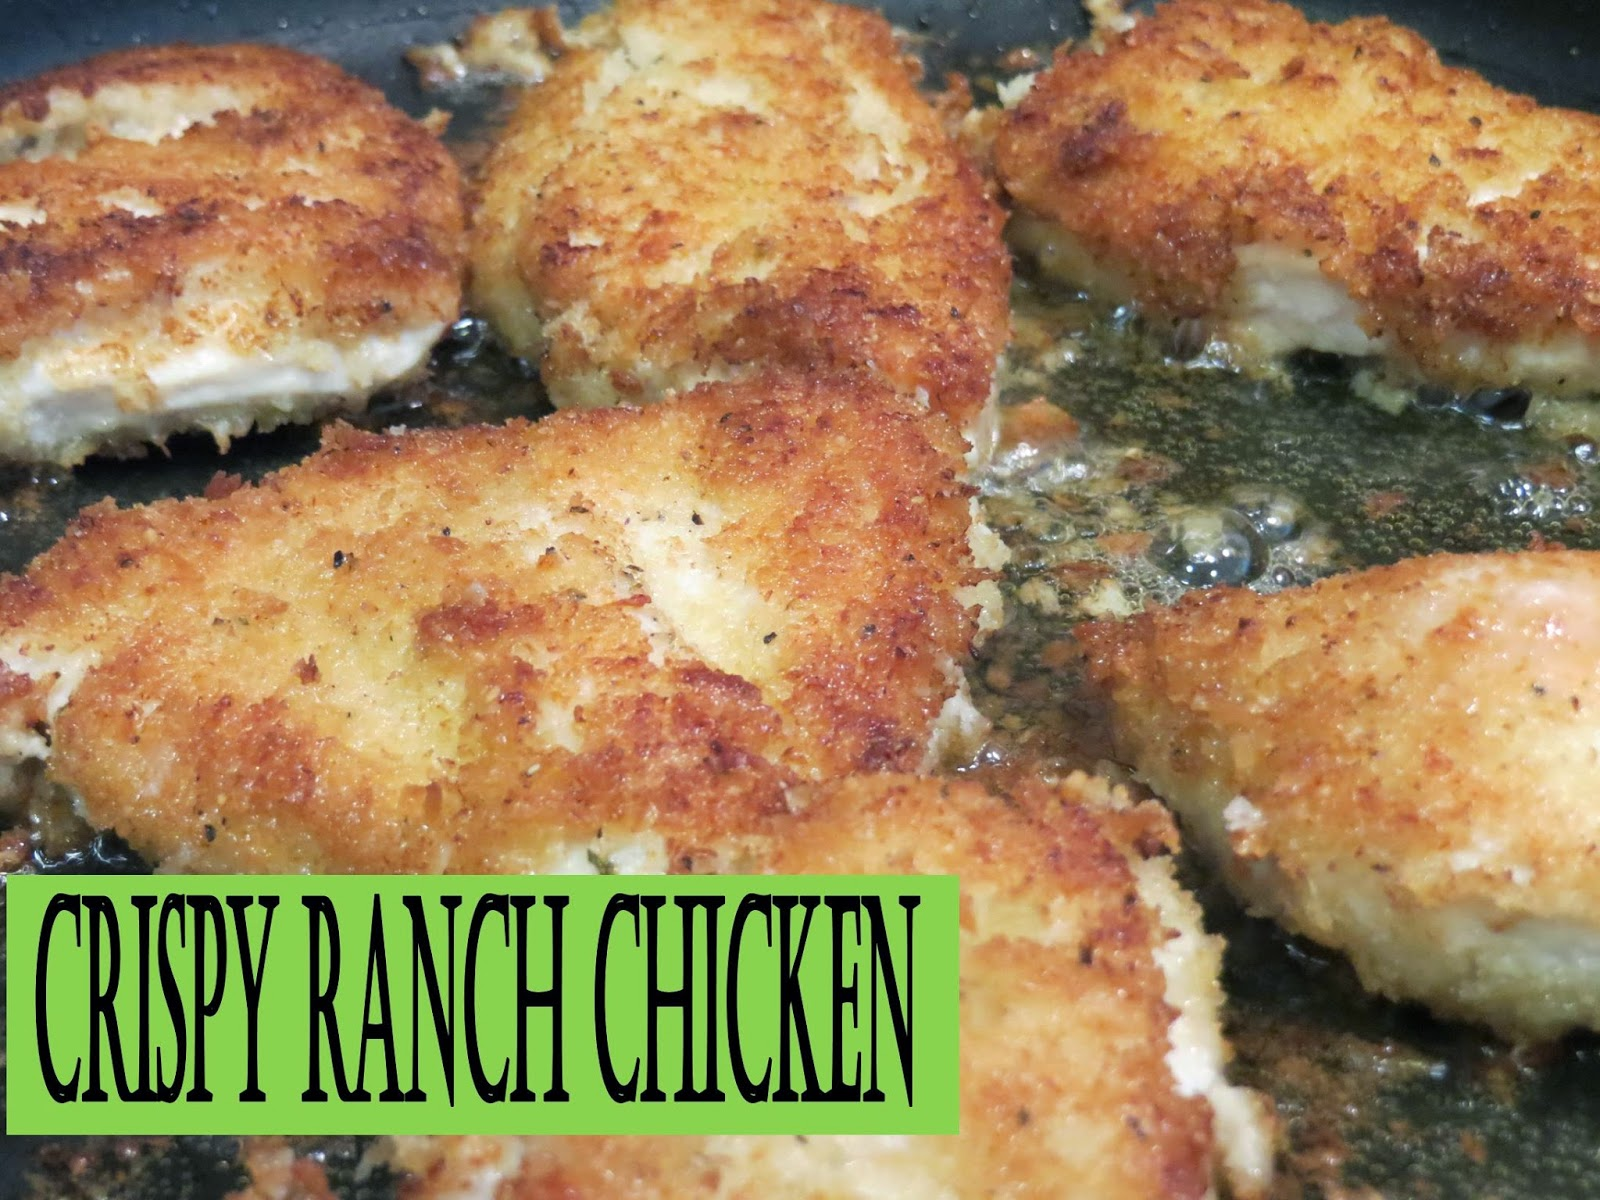 Two Magical Moms: Crispy Ranch Chicken